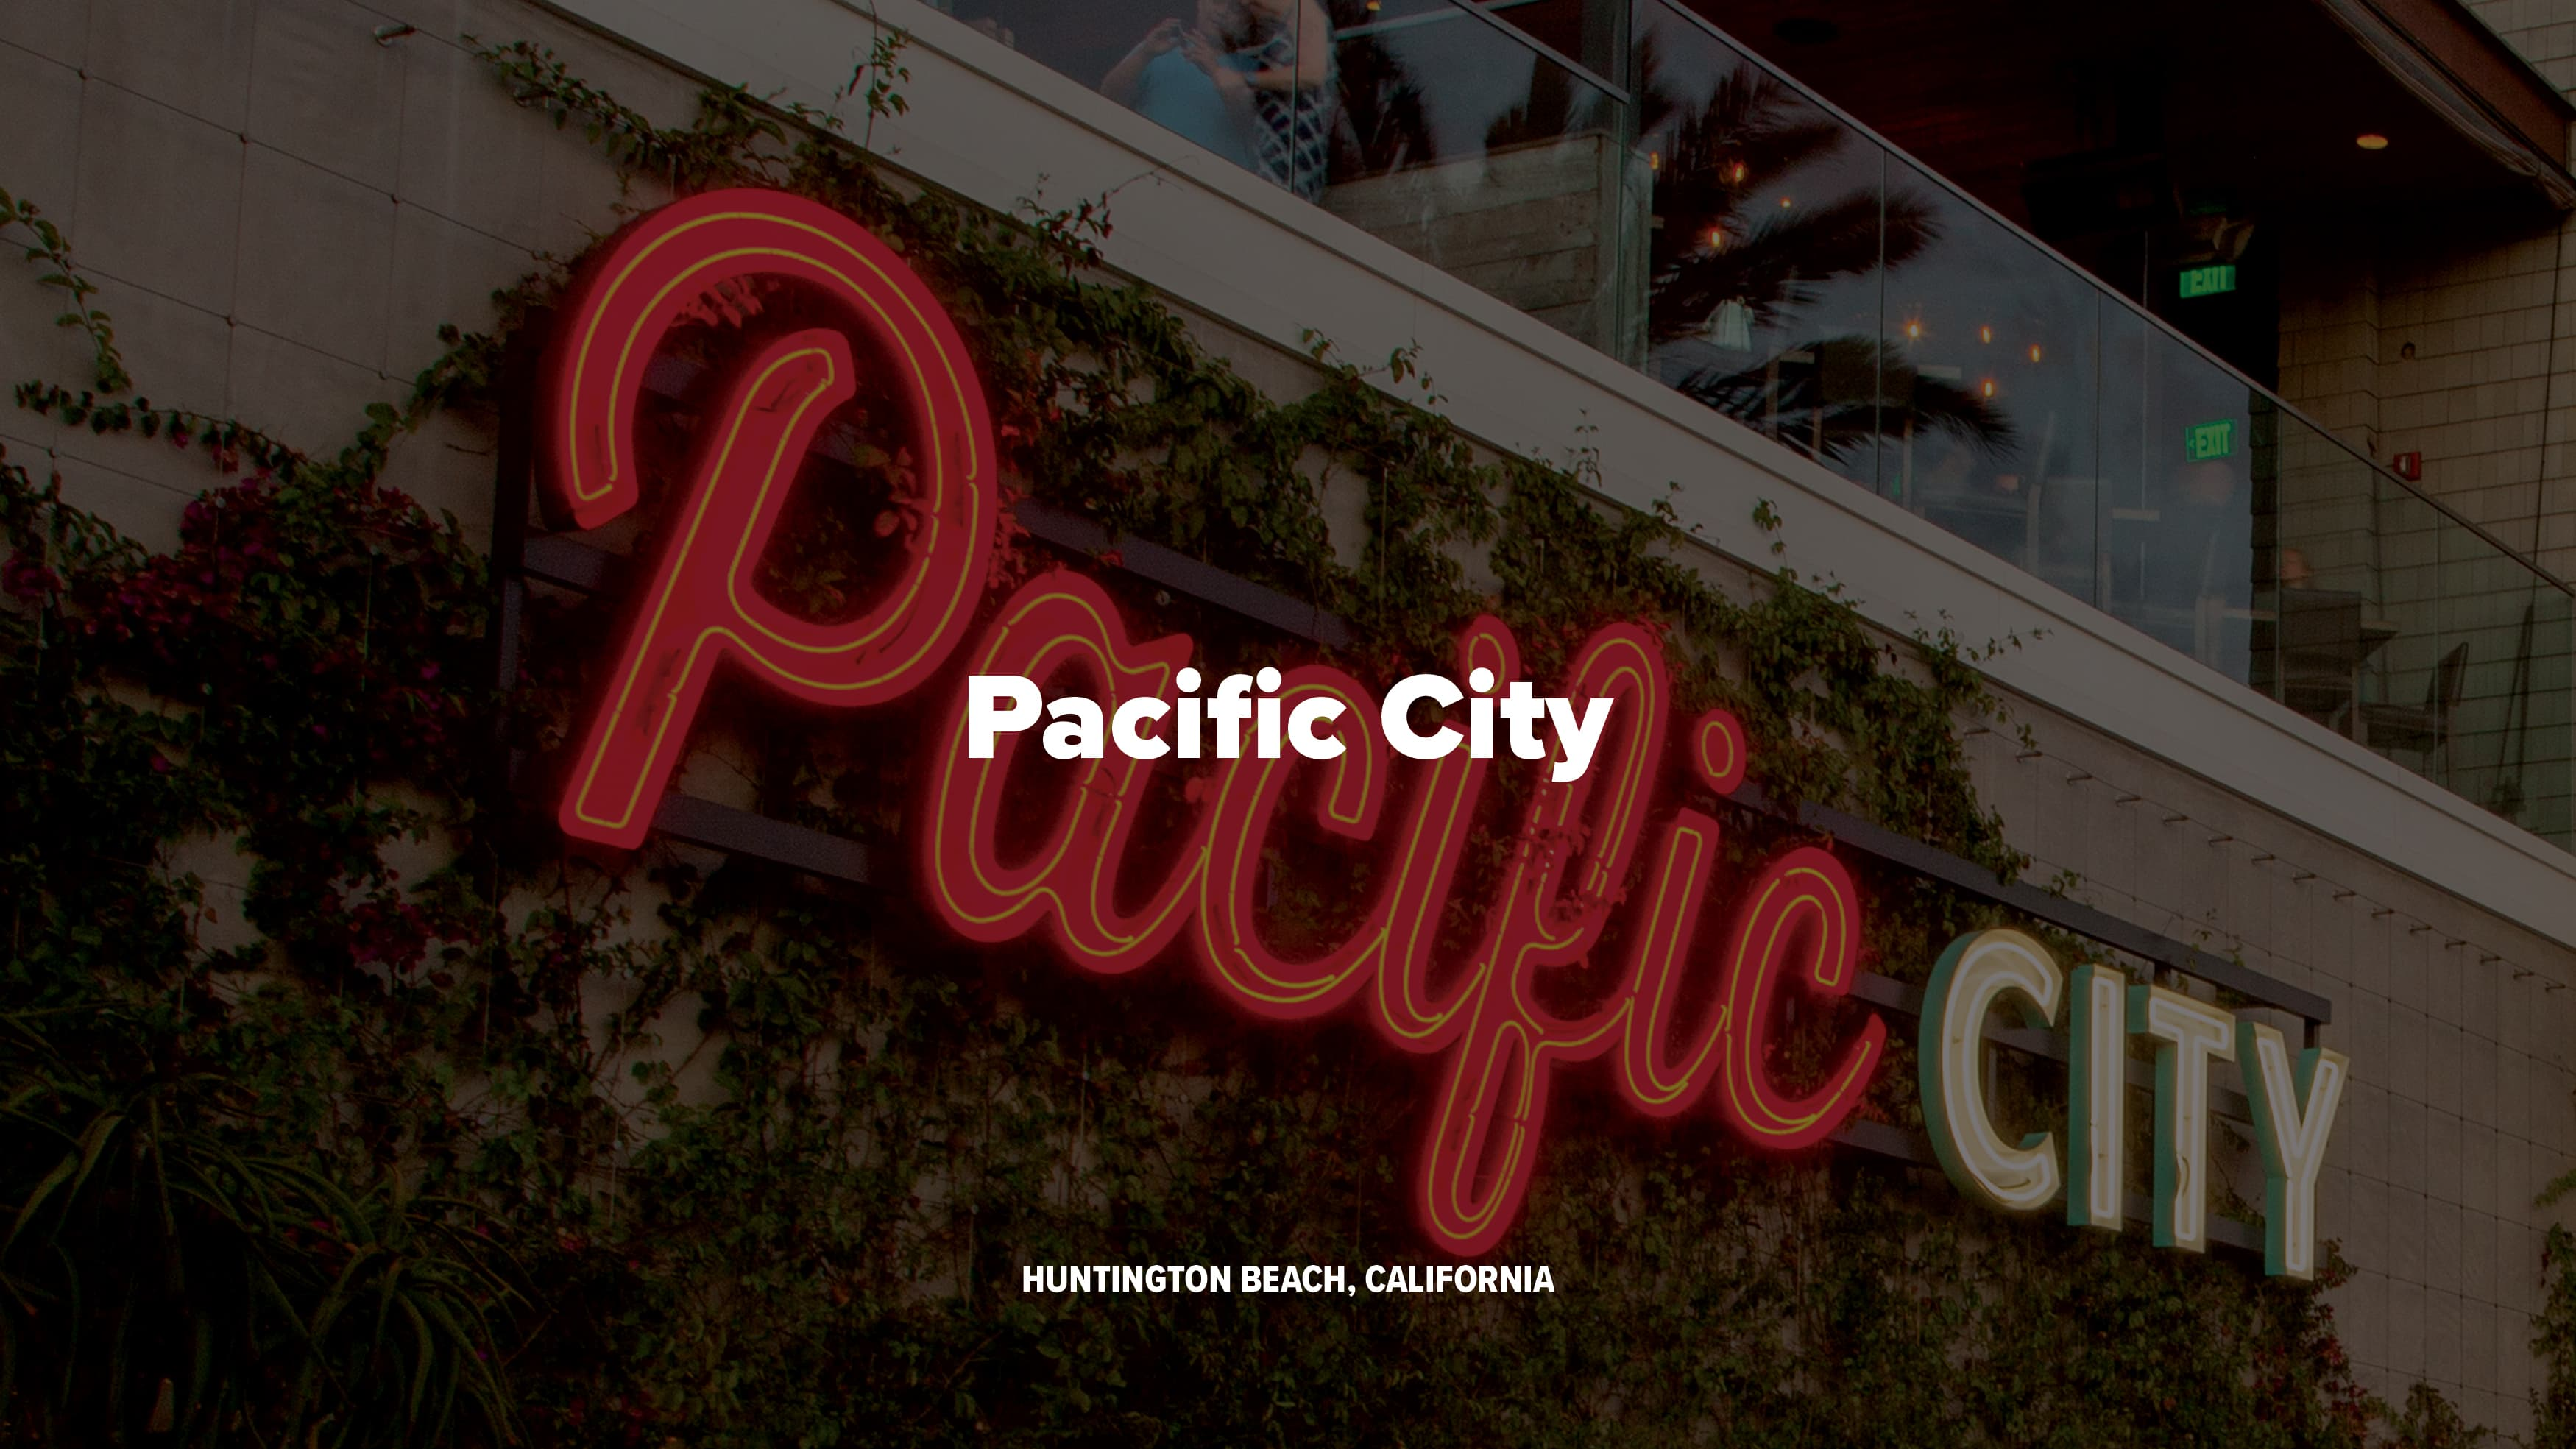 Pacific City branded open-face channel letters mounted to a landscaping wall